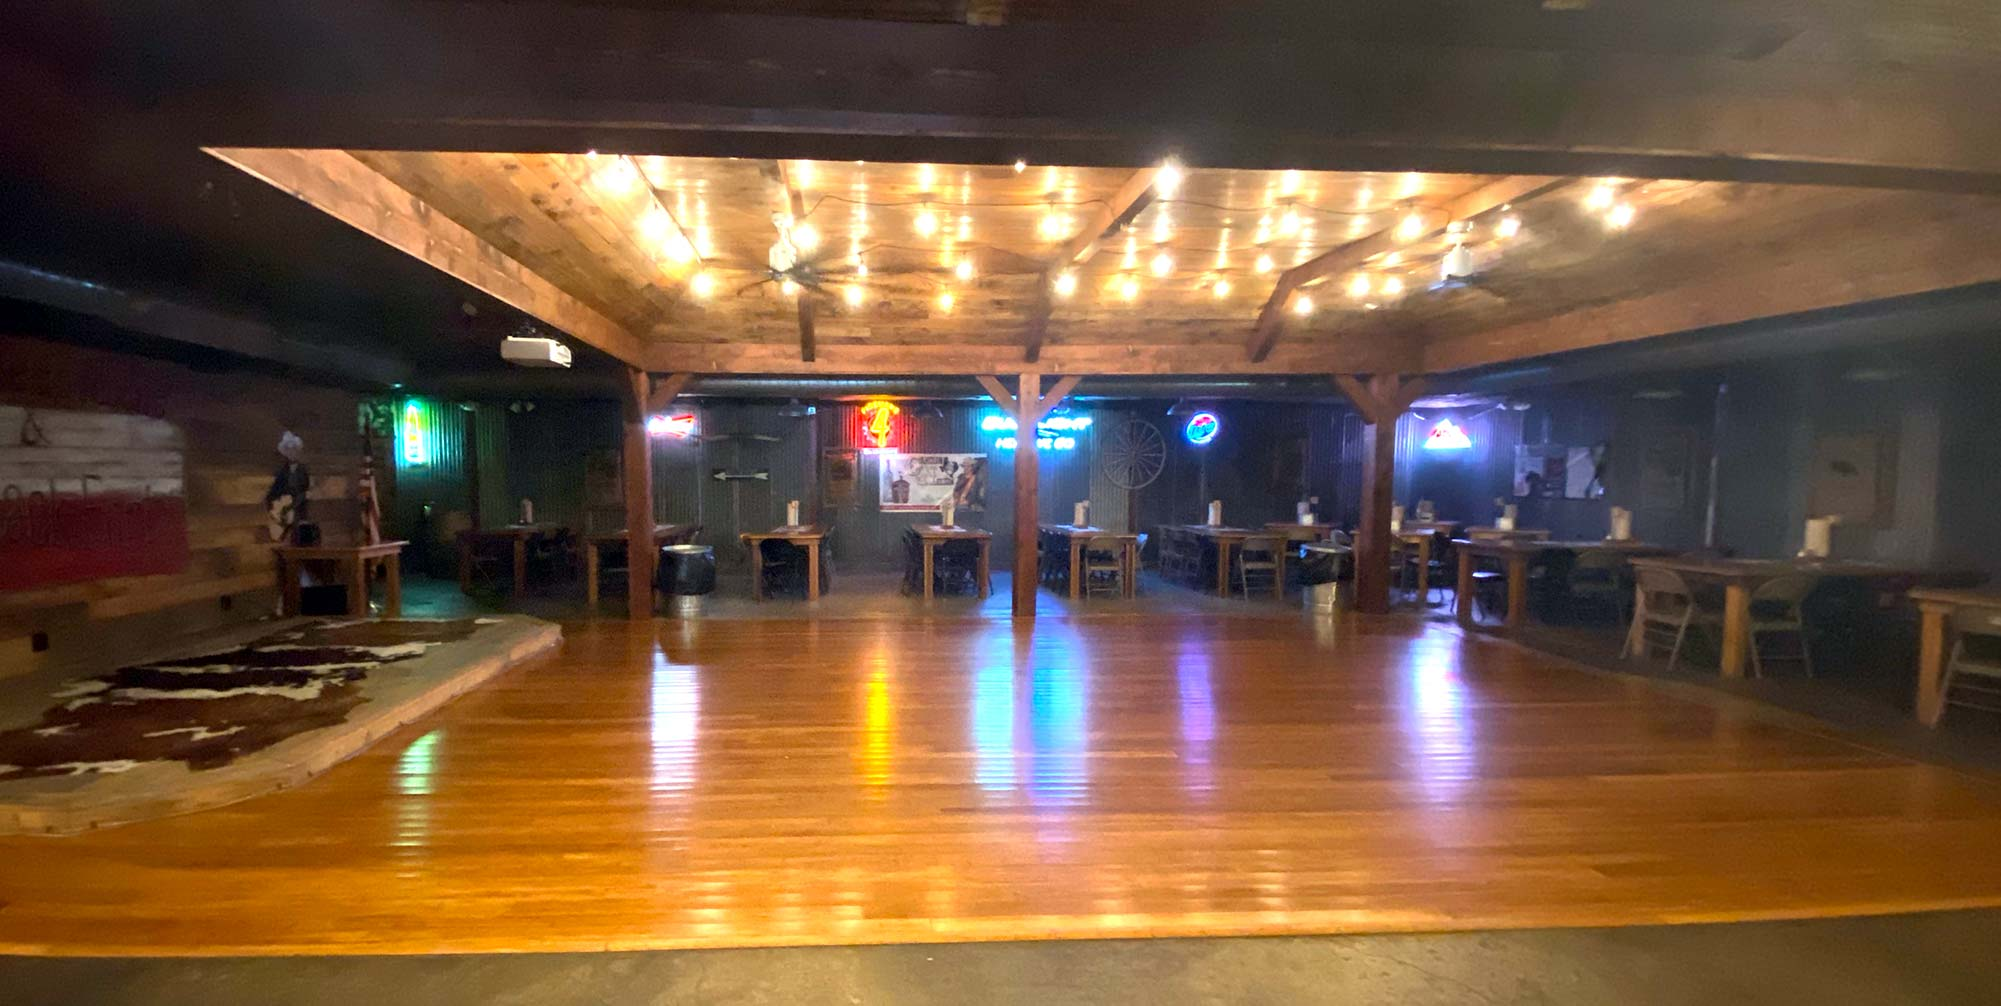 The dance floor at the Back 40 Dance Hall, Old 300 BBQ